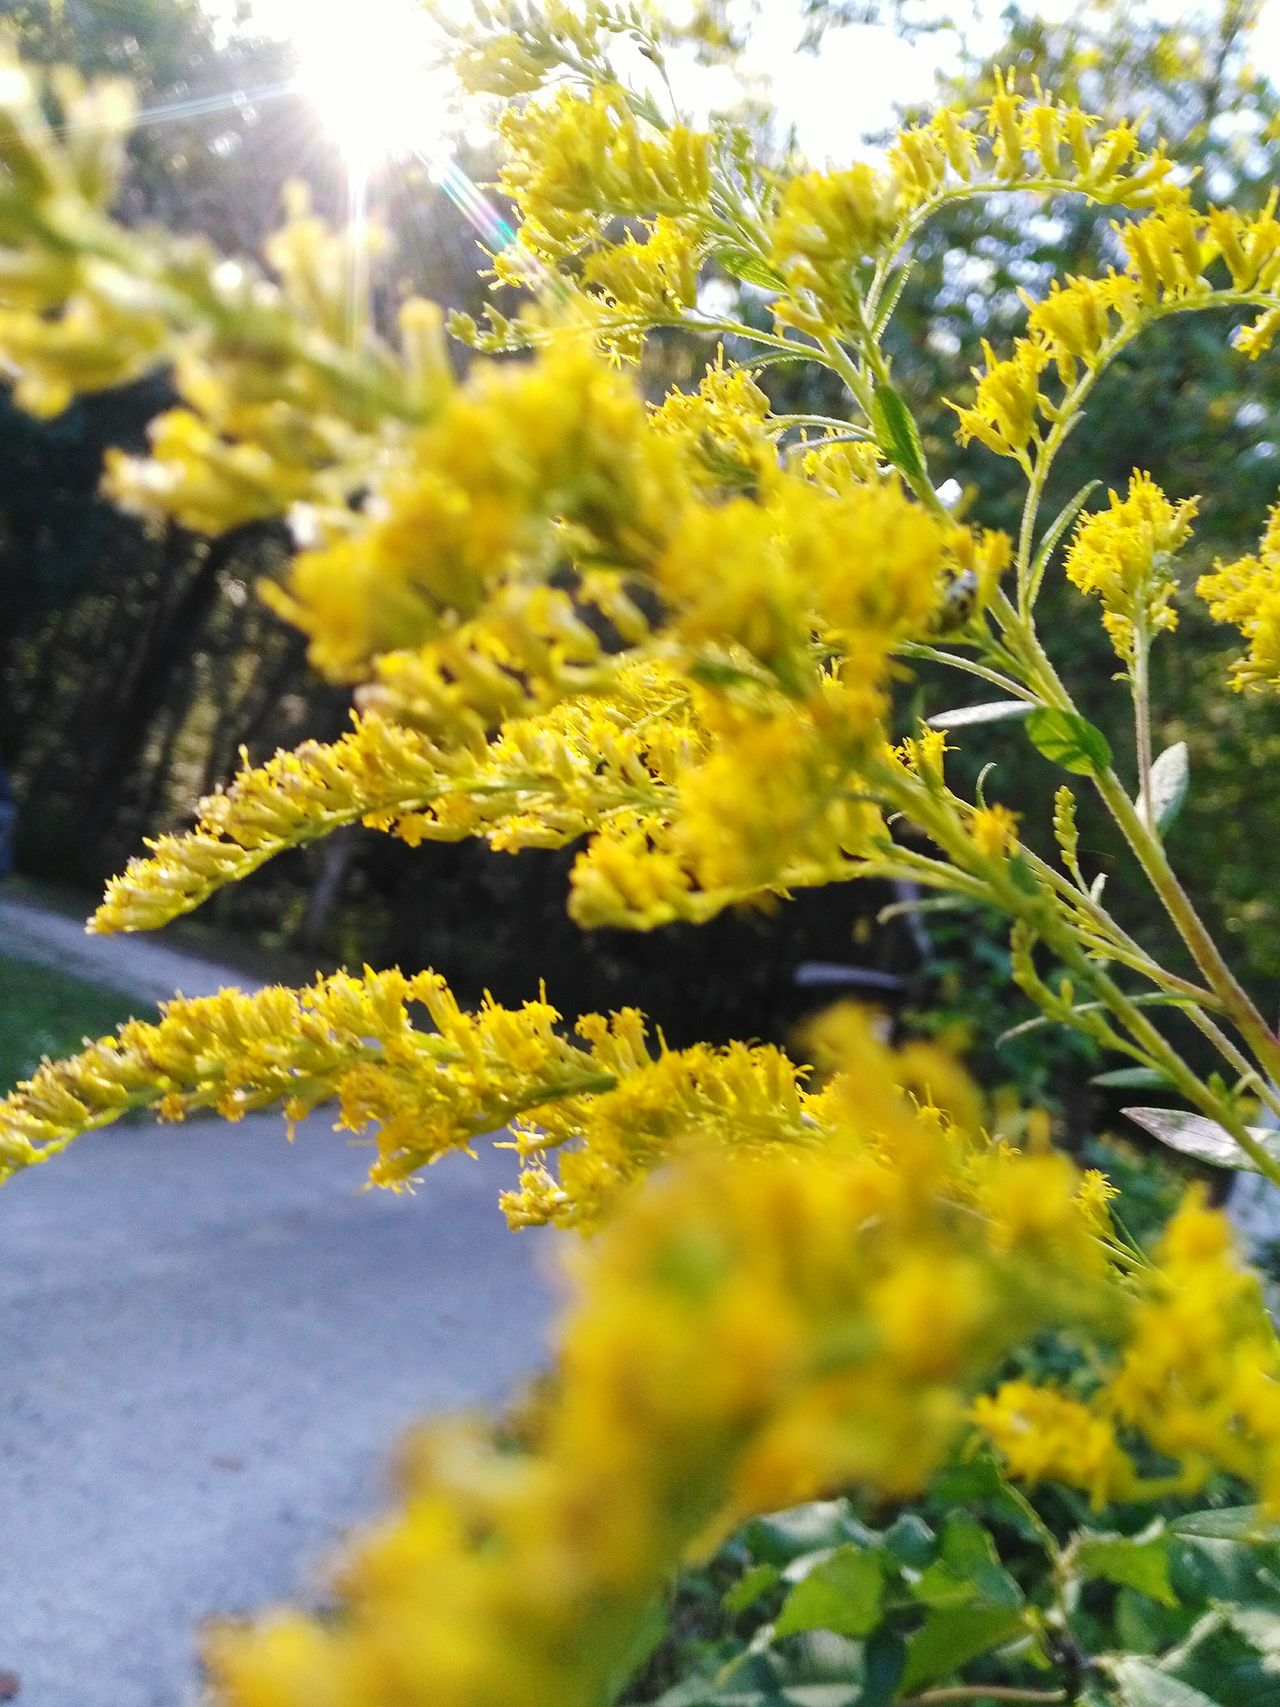 Kentucky's state flower, the Goldenrod Growth Yellow Growth Flower Freshness Fragility Beauty In Nature Close-up Selective Focus Nature Plant Petal Day Blossom In Bloom Botany Green Color Focus On Foreground Outdoors Vibrant Color Springtime Yellow Color Maximum Closeness